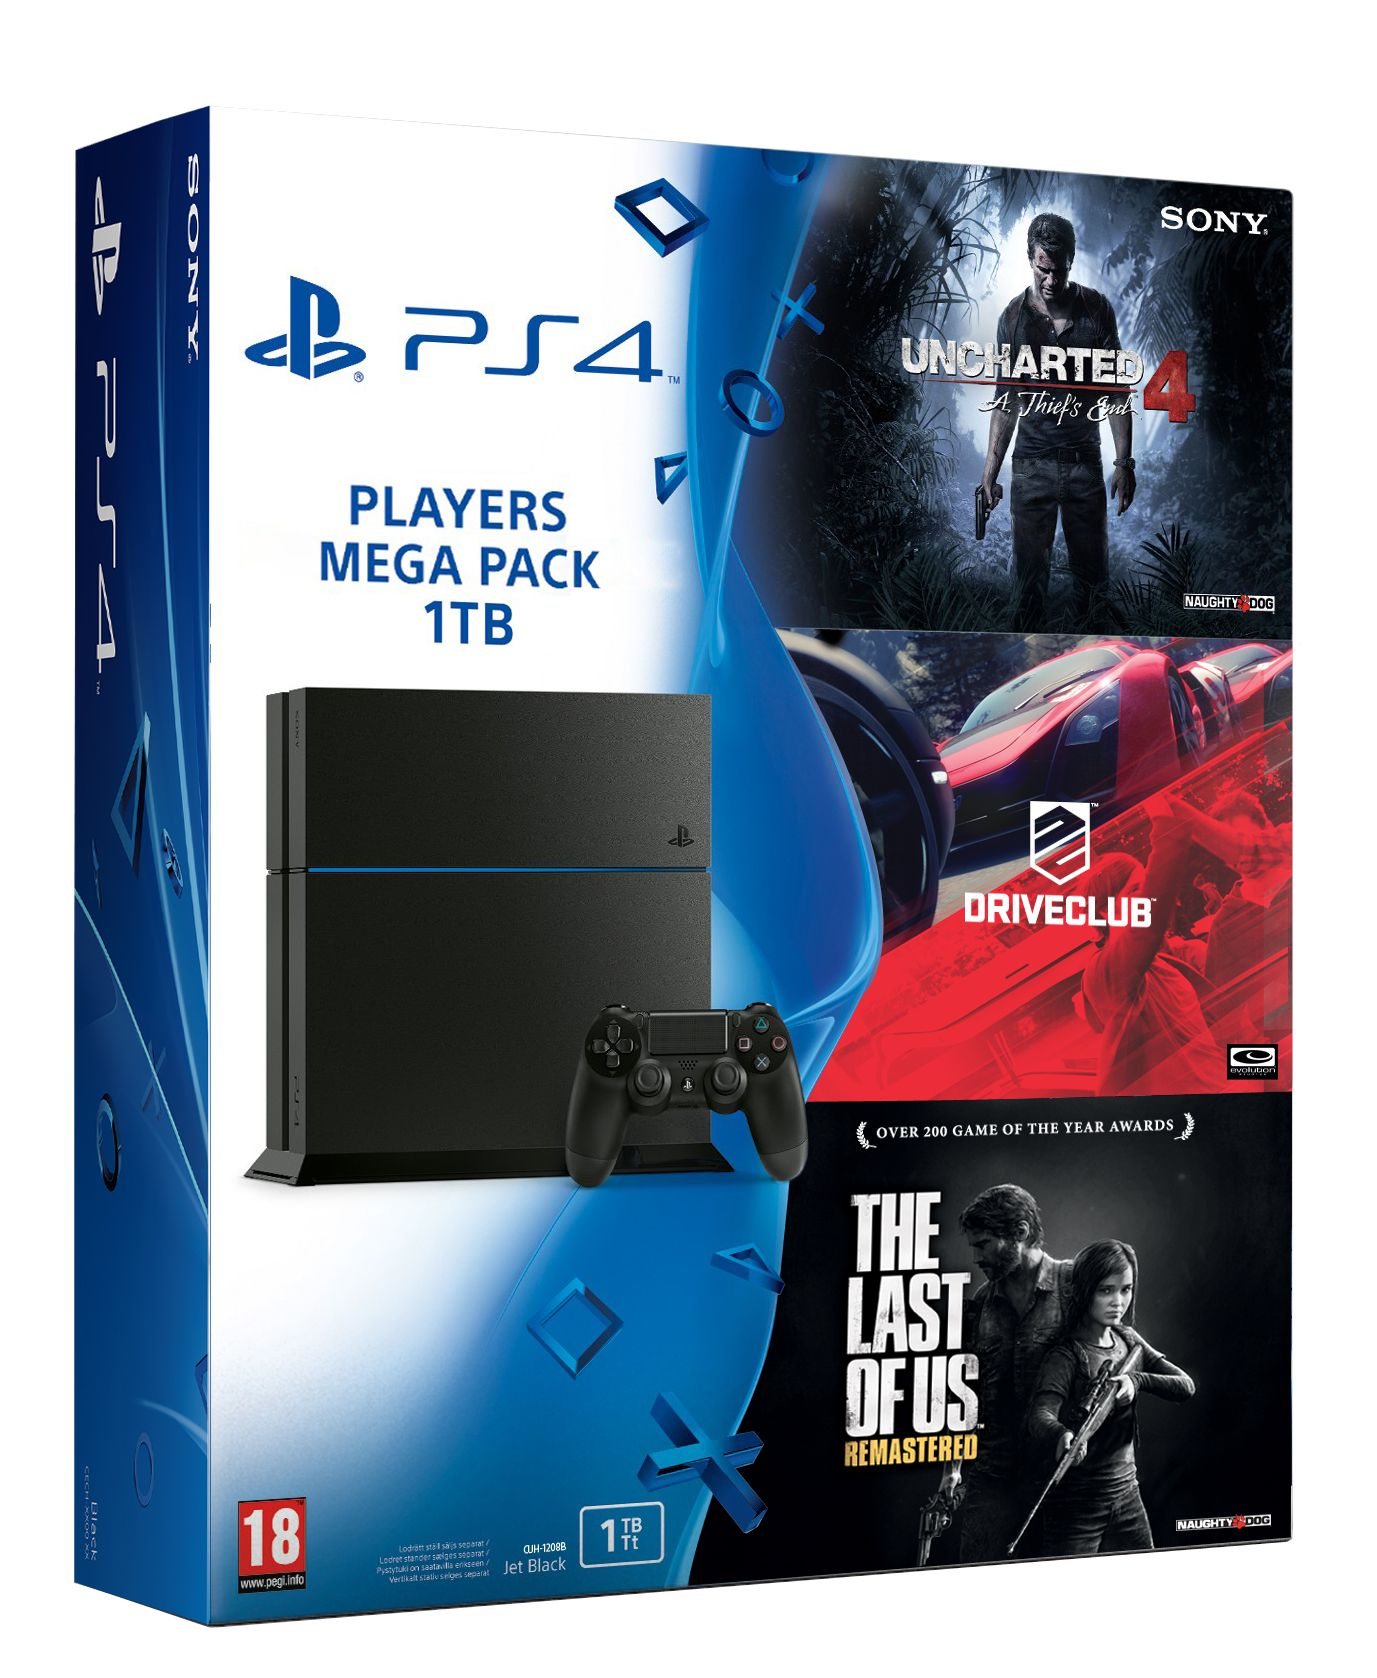 Sony Playstation 4 1TB Console Super Bundle with 3 Games (The Last of US ,Drive Club and Uncharted 4)